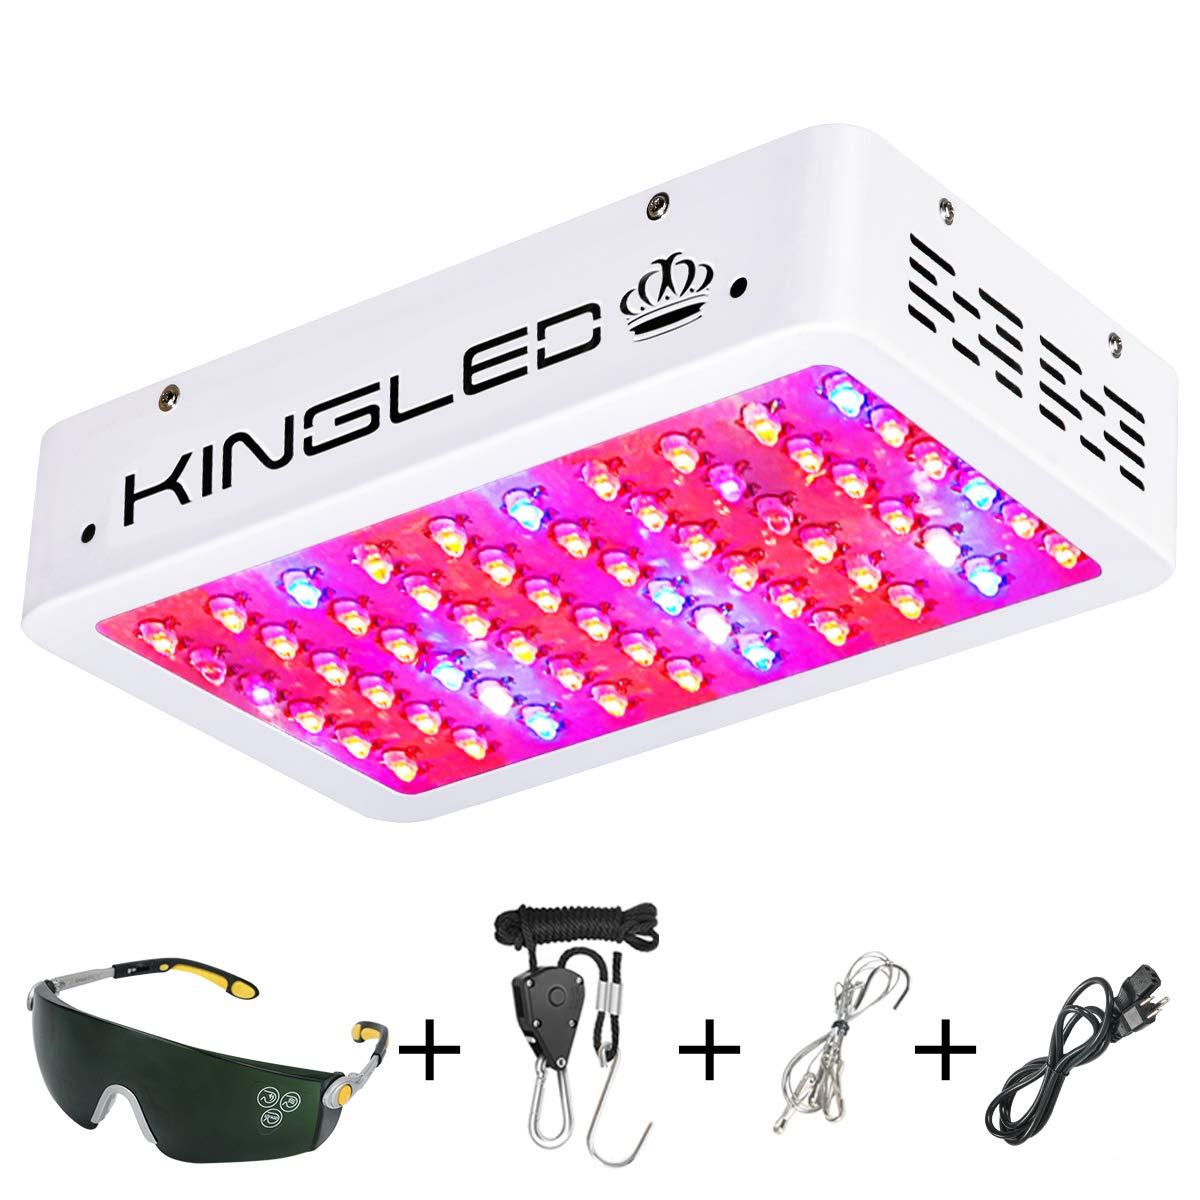 King Plus 600 Watts Led Grow Light For Marijuana Indoors Review